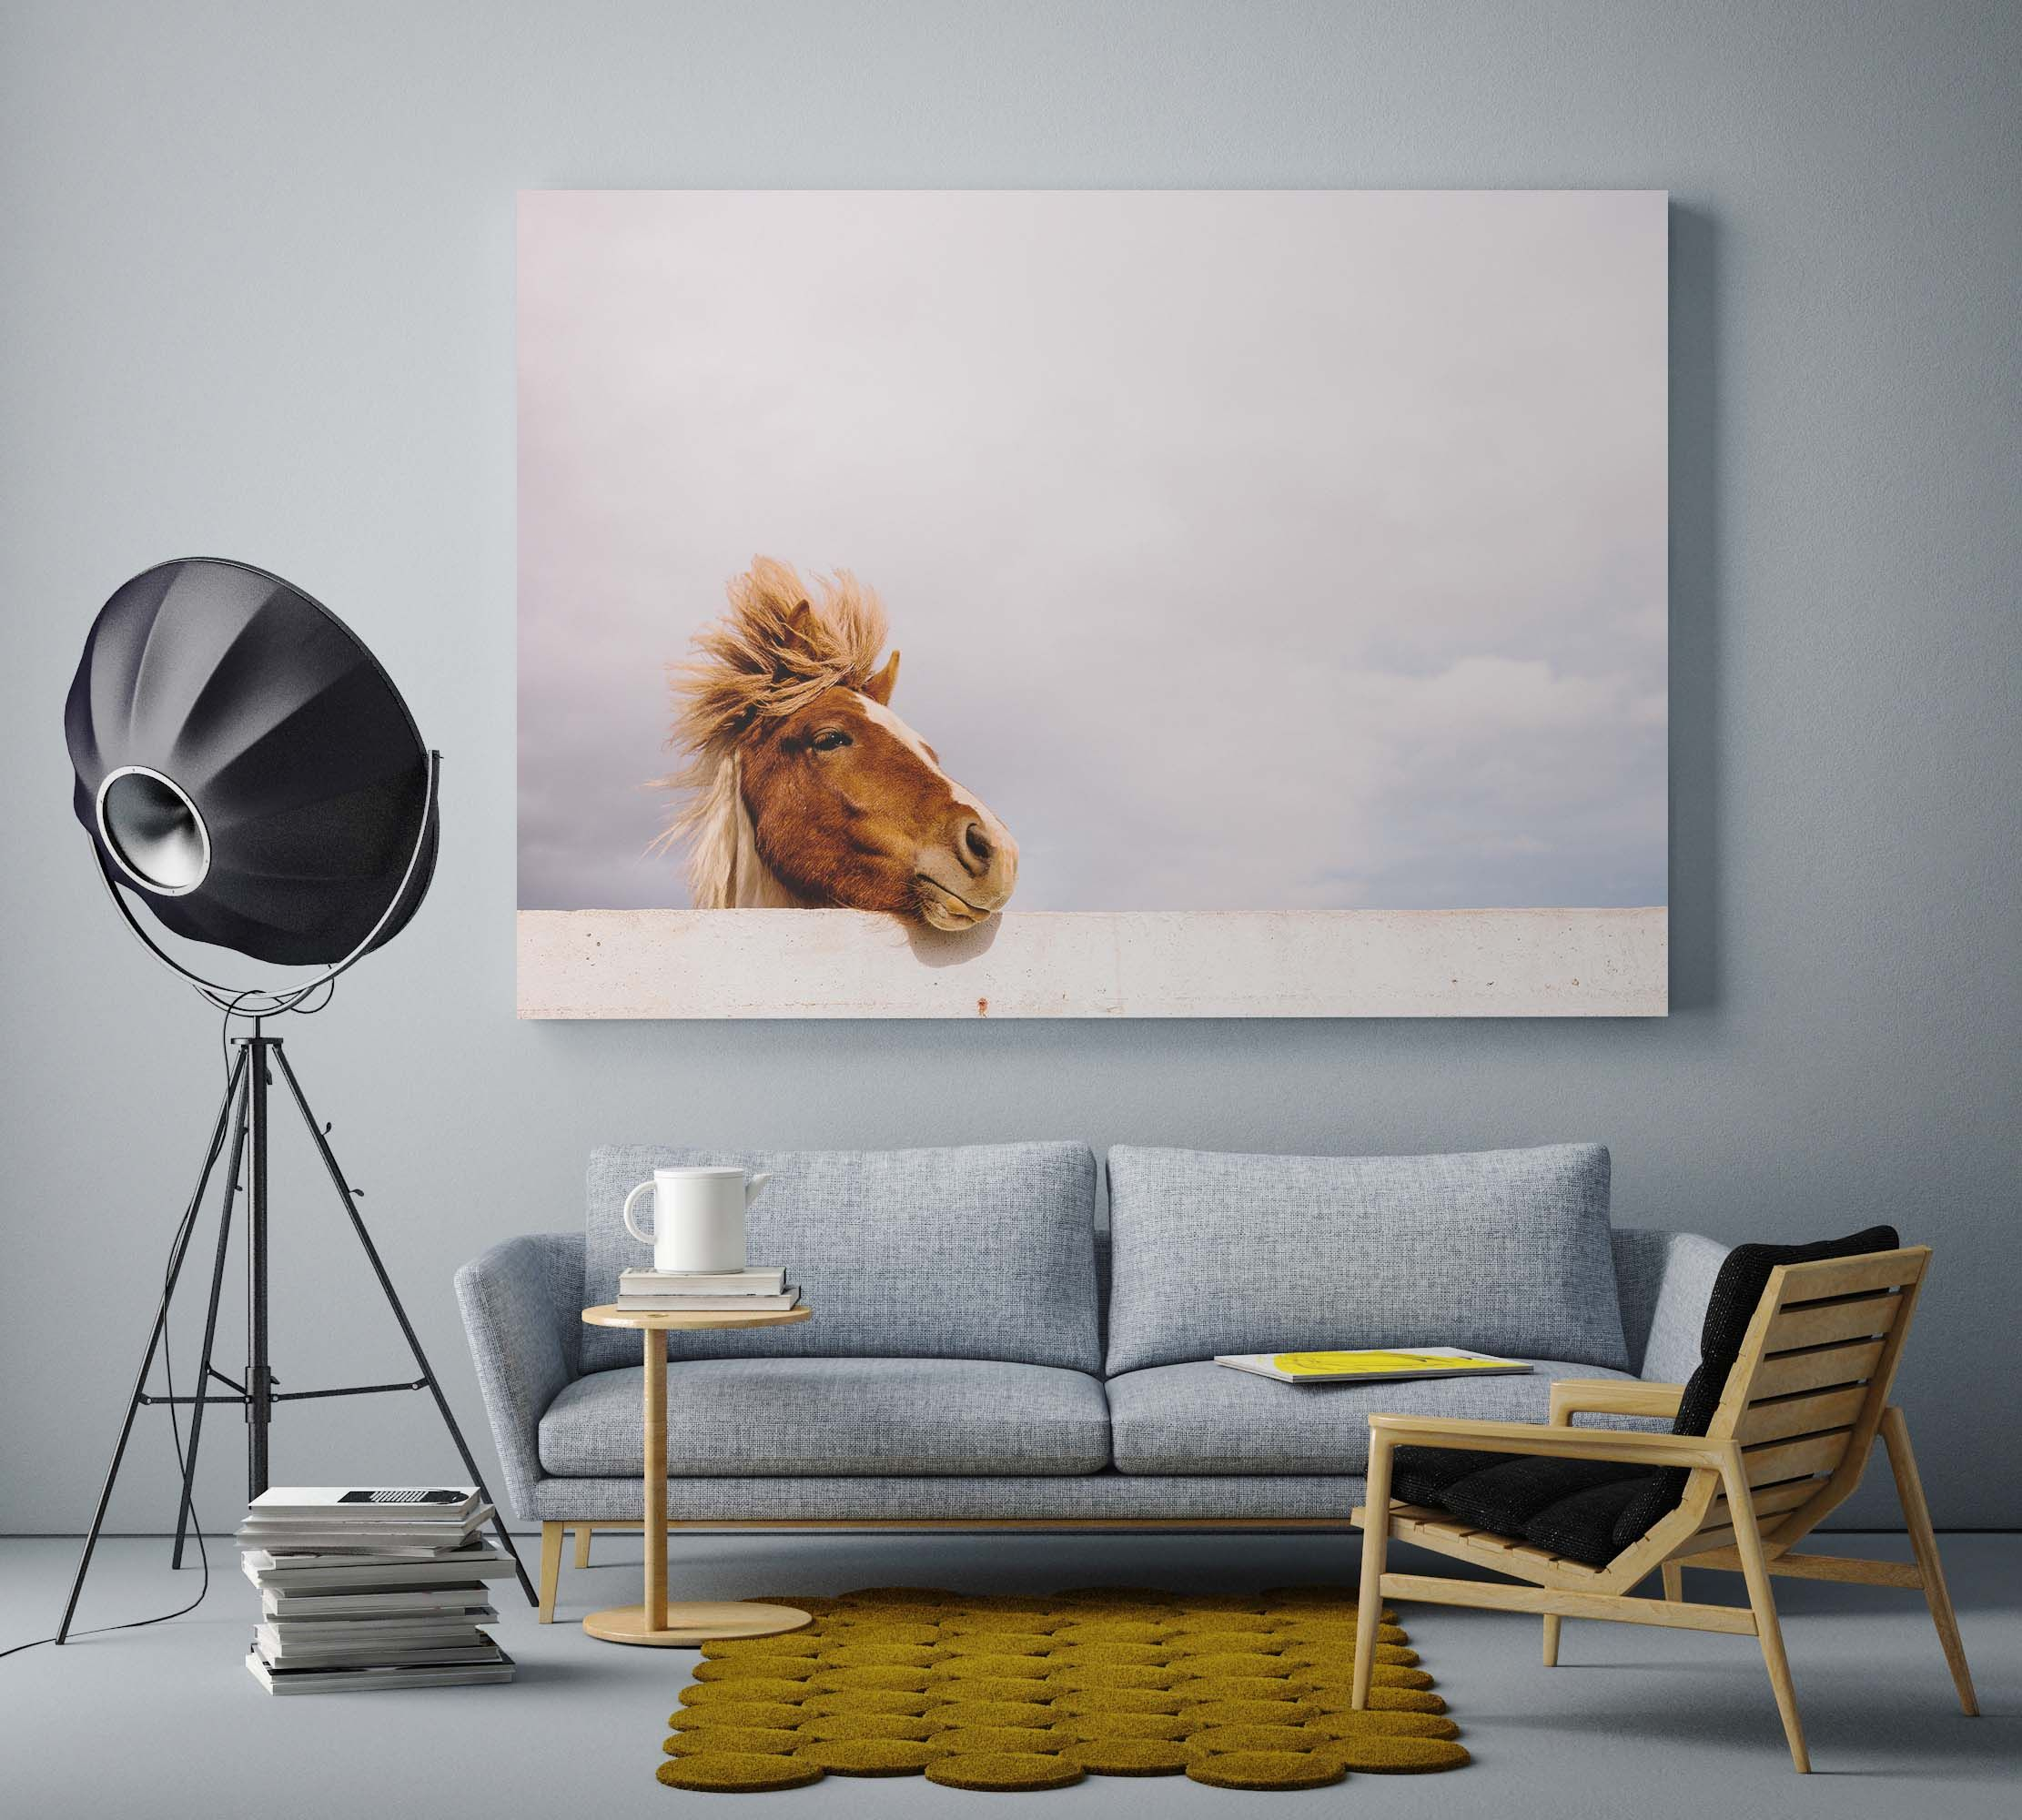 Funny Pony, photo art picture by USVA Gallery with grey furniture.